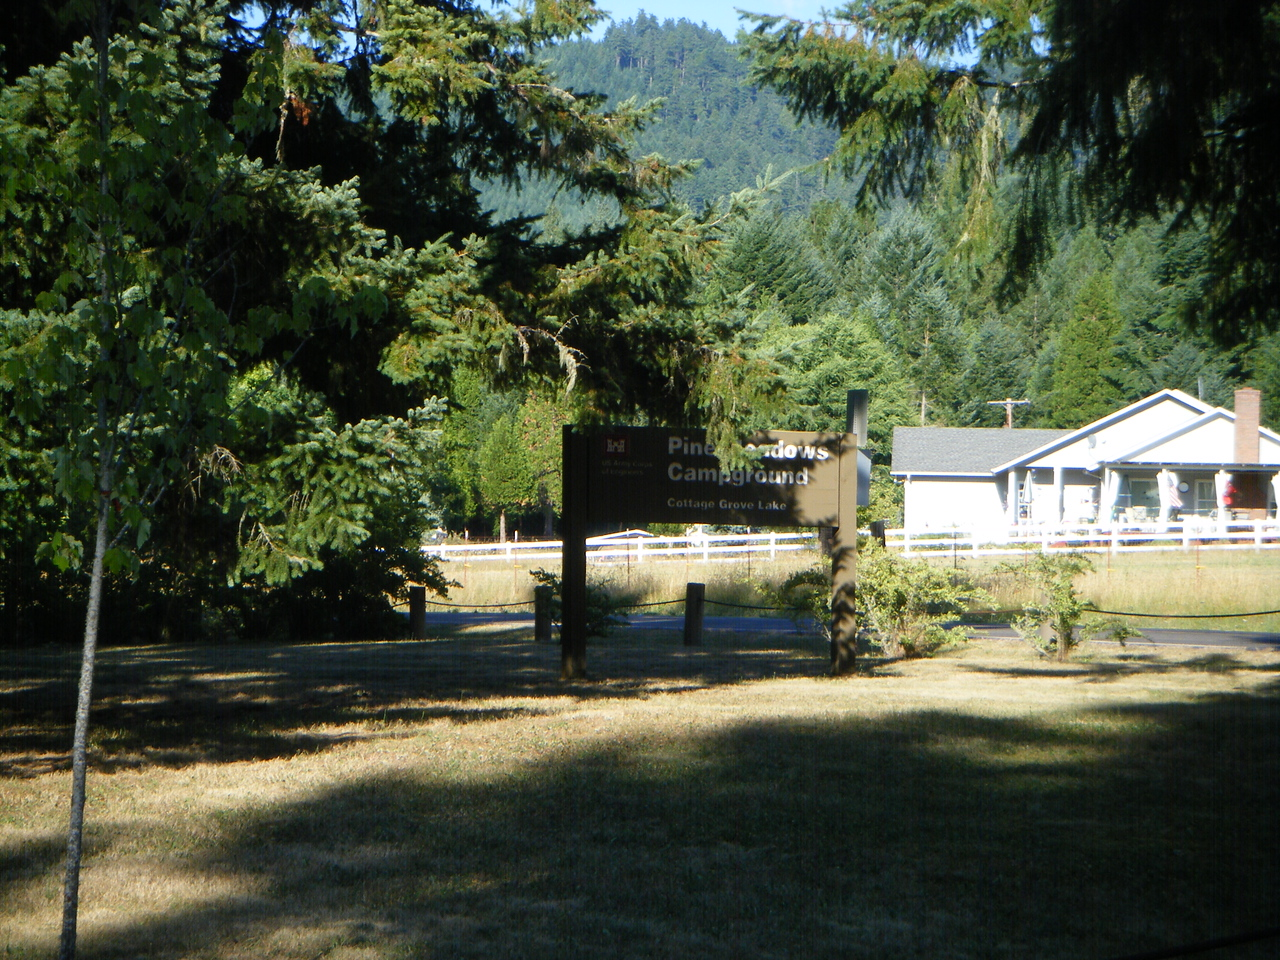 Campground north of the Cali border